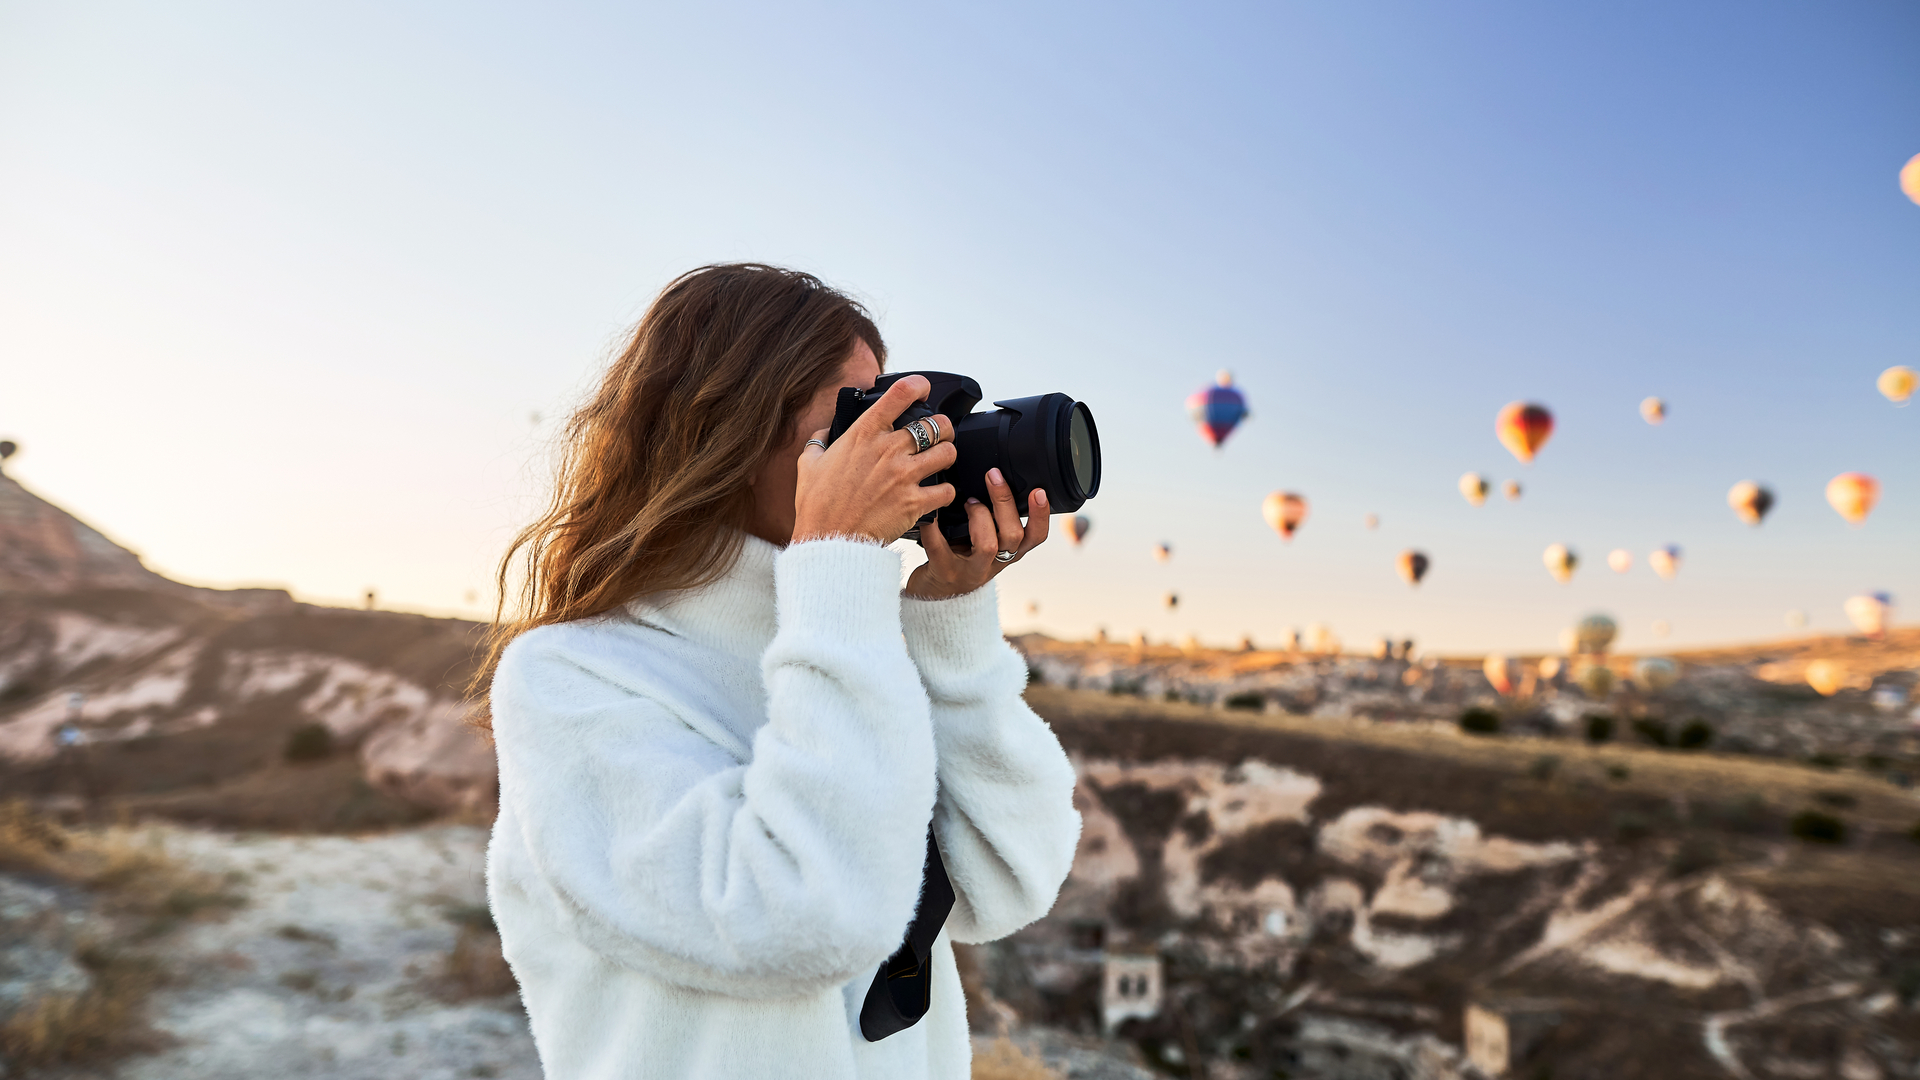 The Best Free Stock Photos In 2021 High Quality Images For Your Site And More Techradar